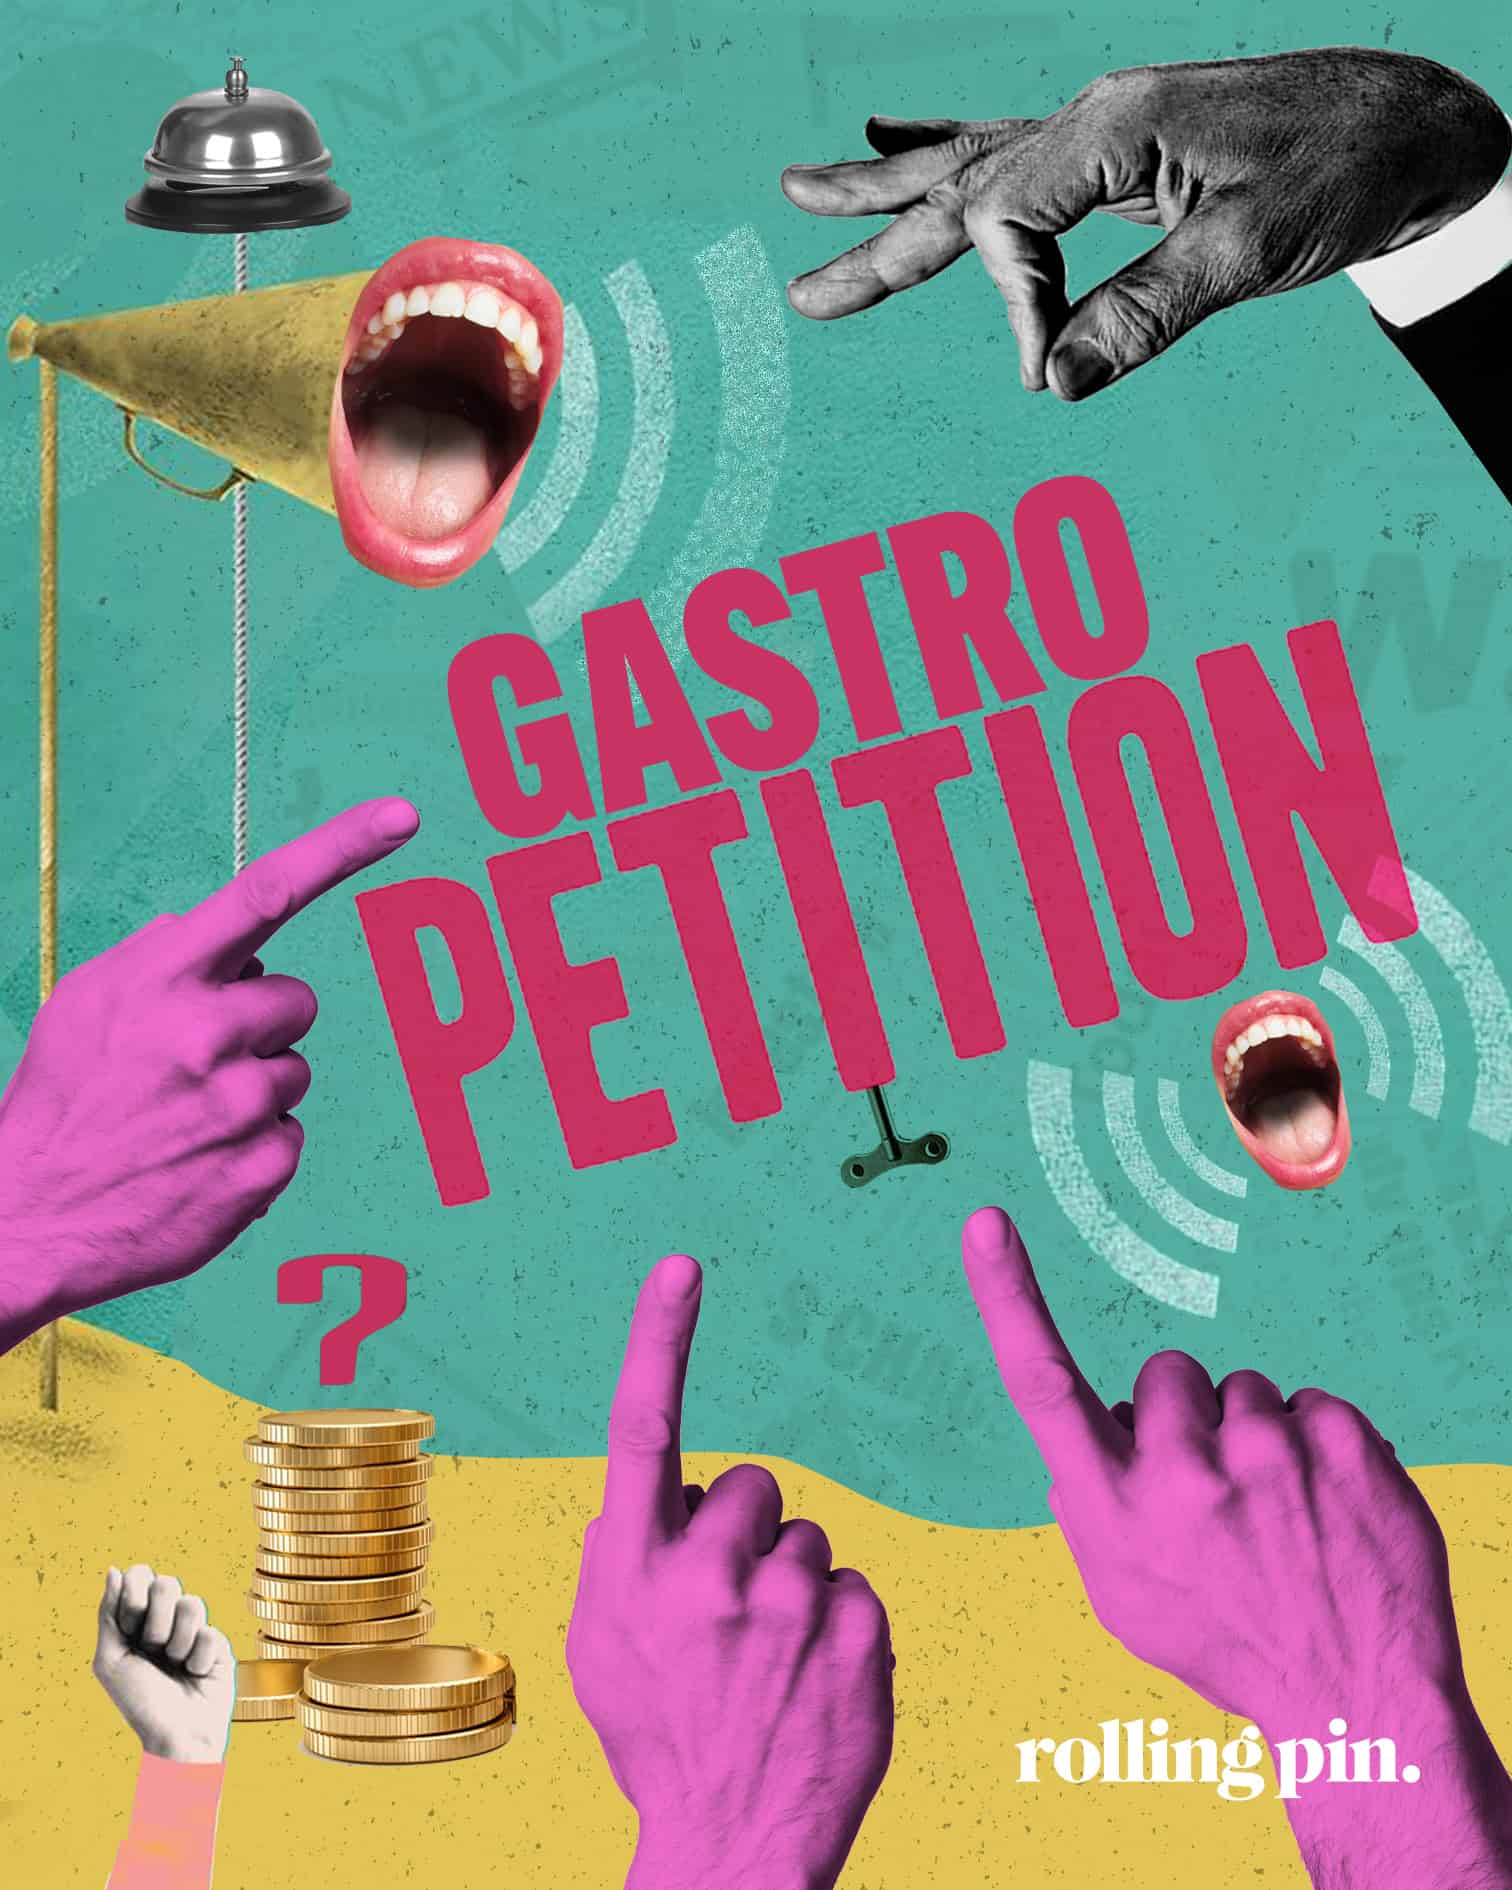 Facebook_Post_GastroPetition